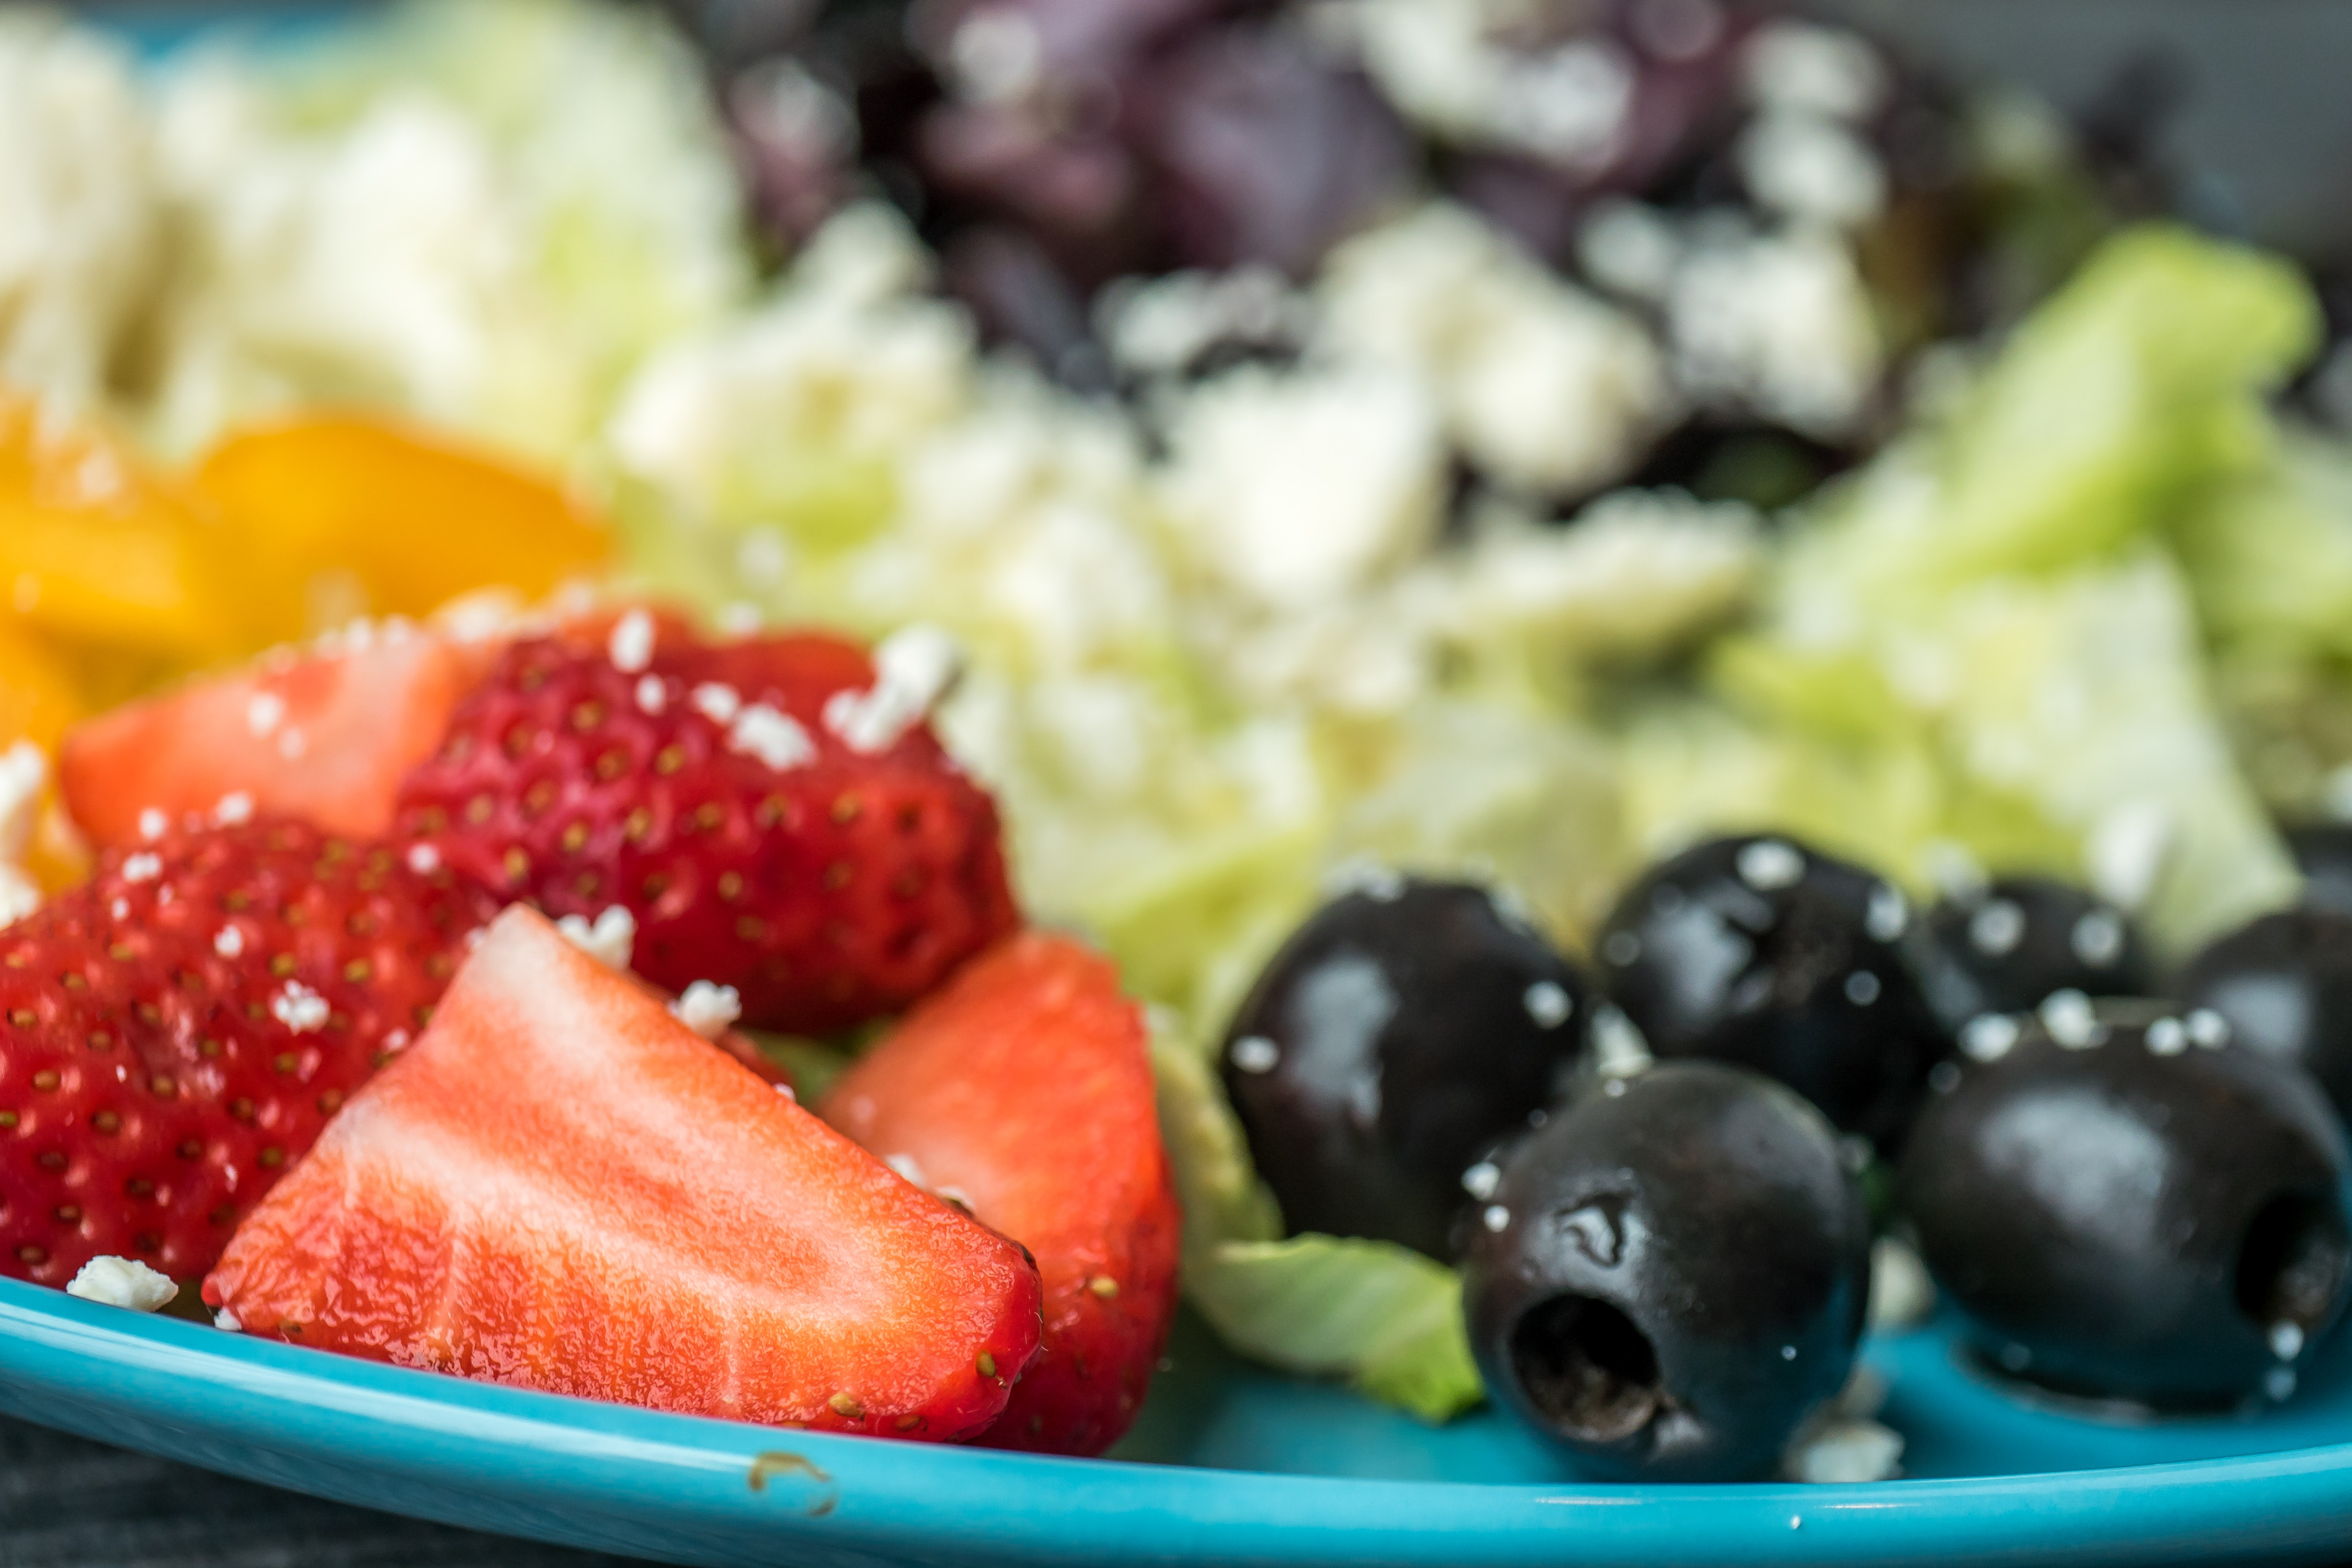 Shallow Focus Photography of Sliced Strawberries and Black Olives, Appetizer, Healthy lifestyle, Tasty, Sweet, HQ Photo